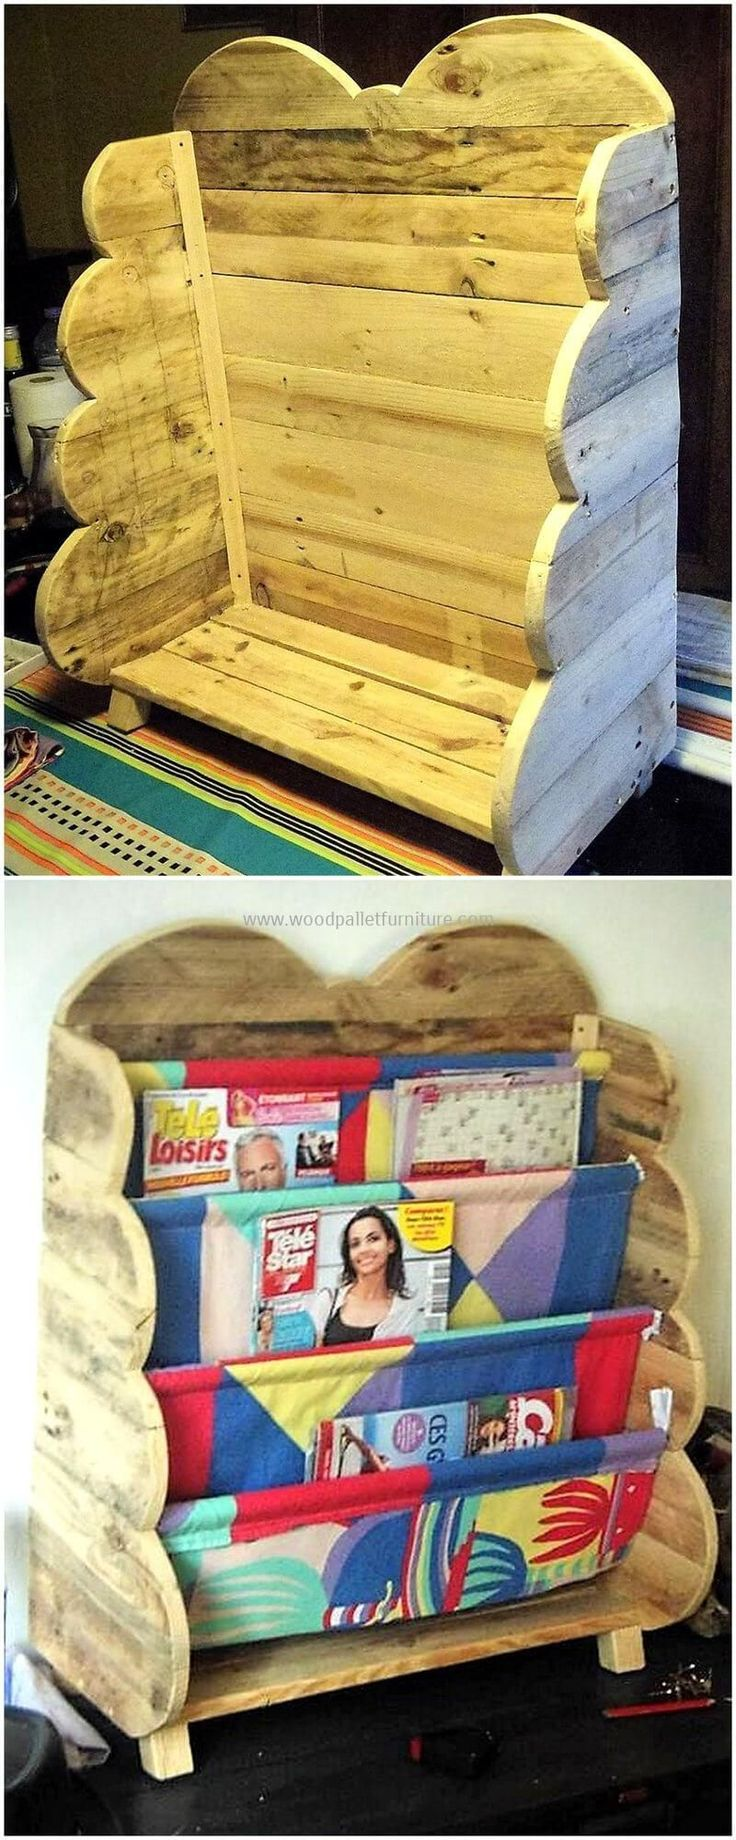 pallet furniture plans step by step / pallet vegetable garden ideas / landscaping ideas with pallets / how to make a pallet garden bed / pallet ideas for outdoors /pallet garden instructions / horizontal pallet garden / pallet shelves ideas / DIY pallet shelf